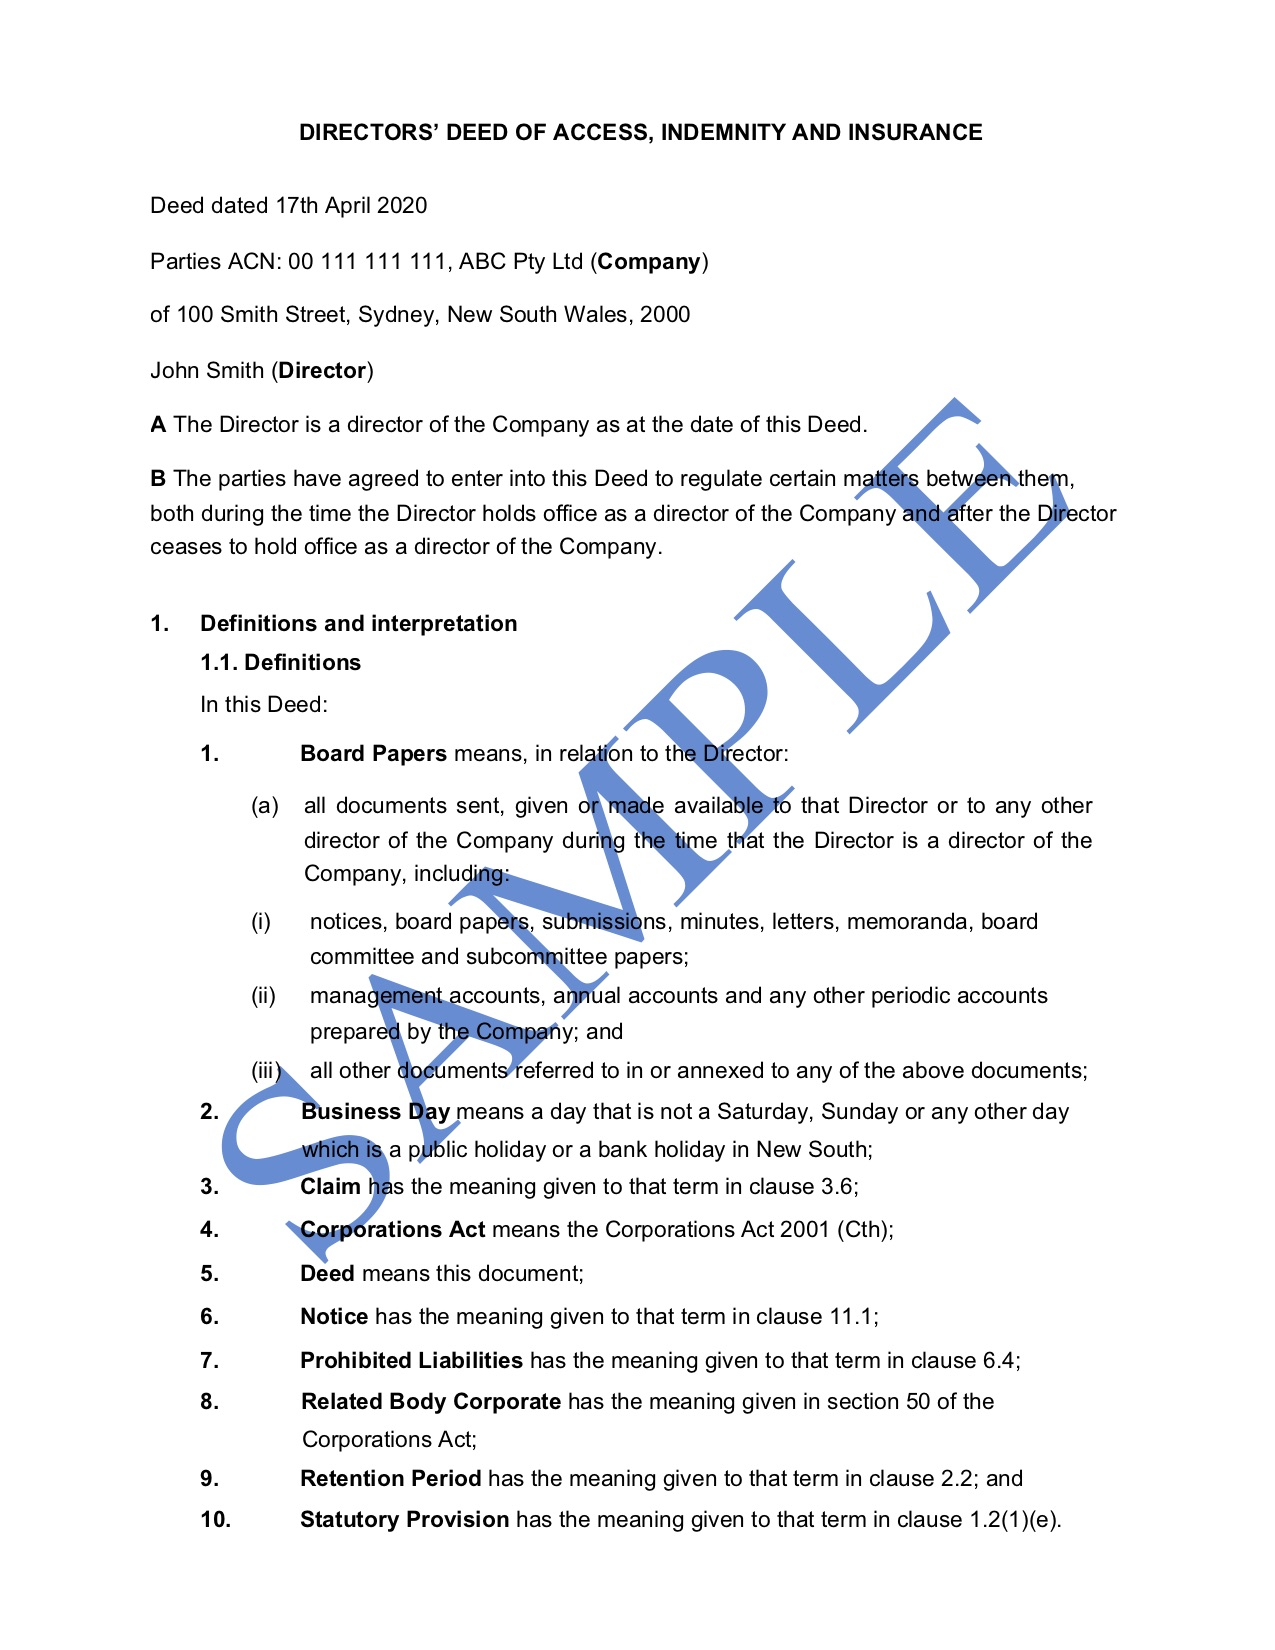 Letter Of Indemnification Sample from lp-public-images.s3-ap-southeast-2.amazonaws.com